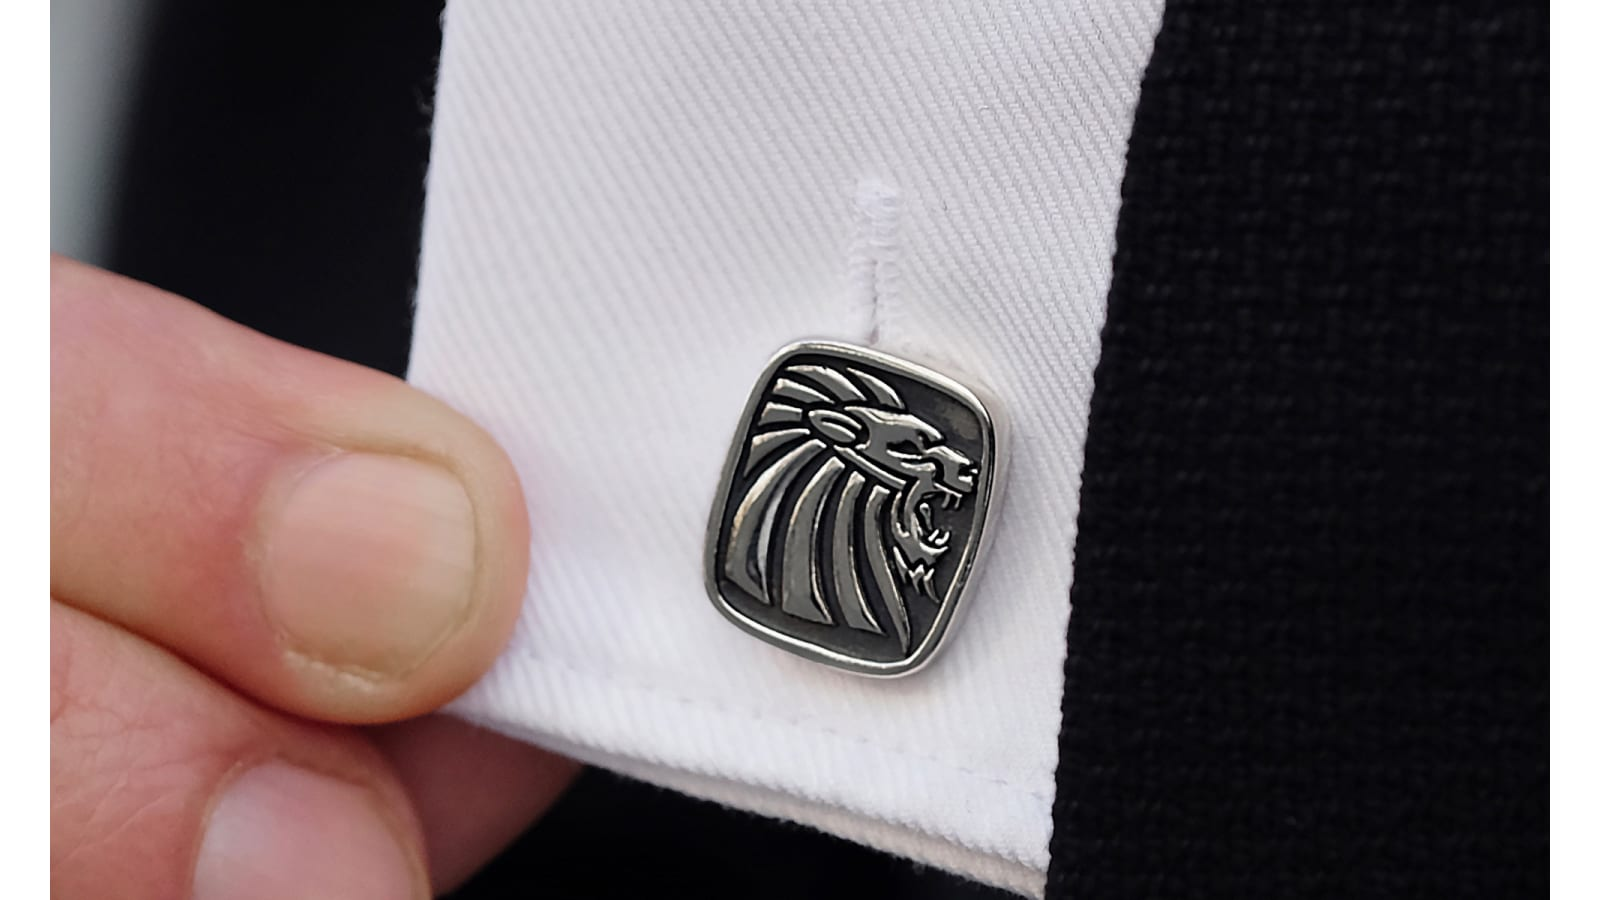 c1223a845686 The Cufflinks - Your Ultimate Guide